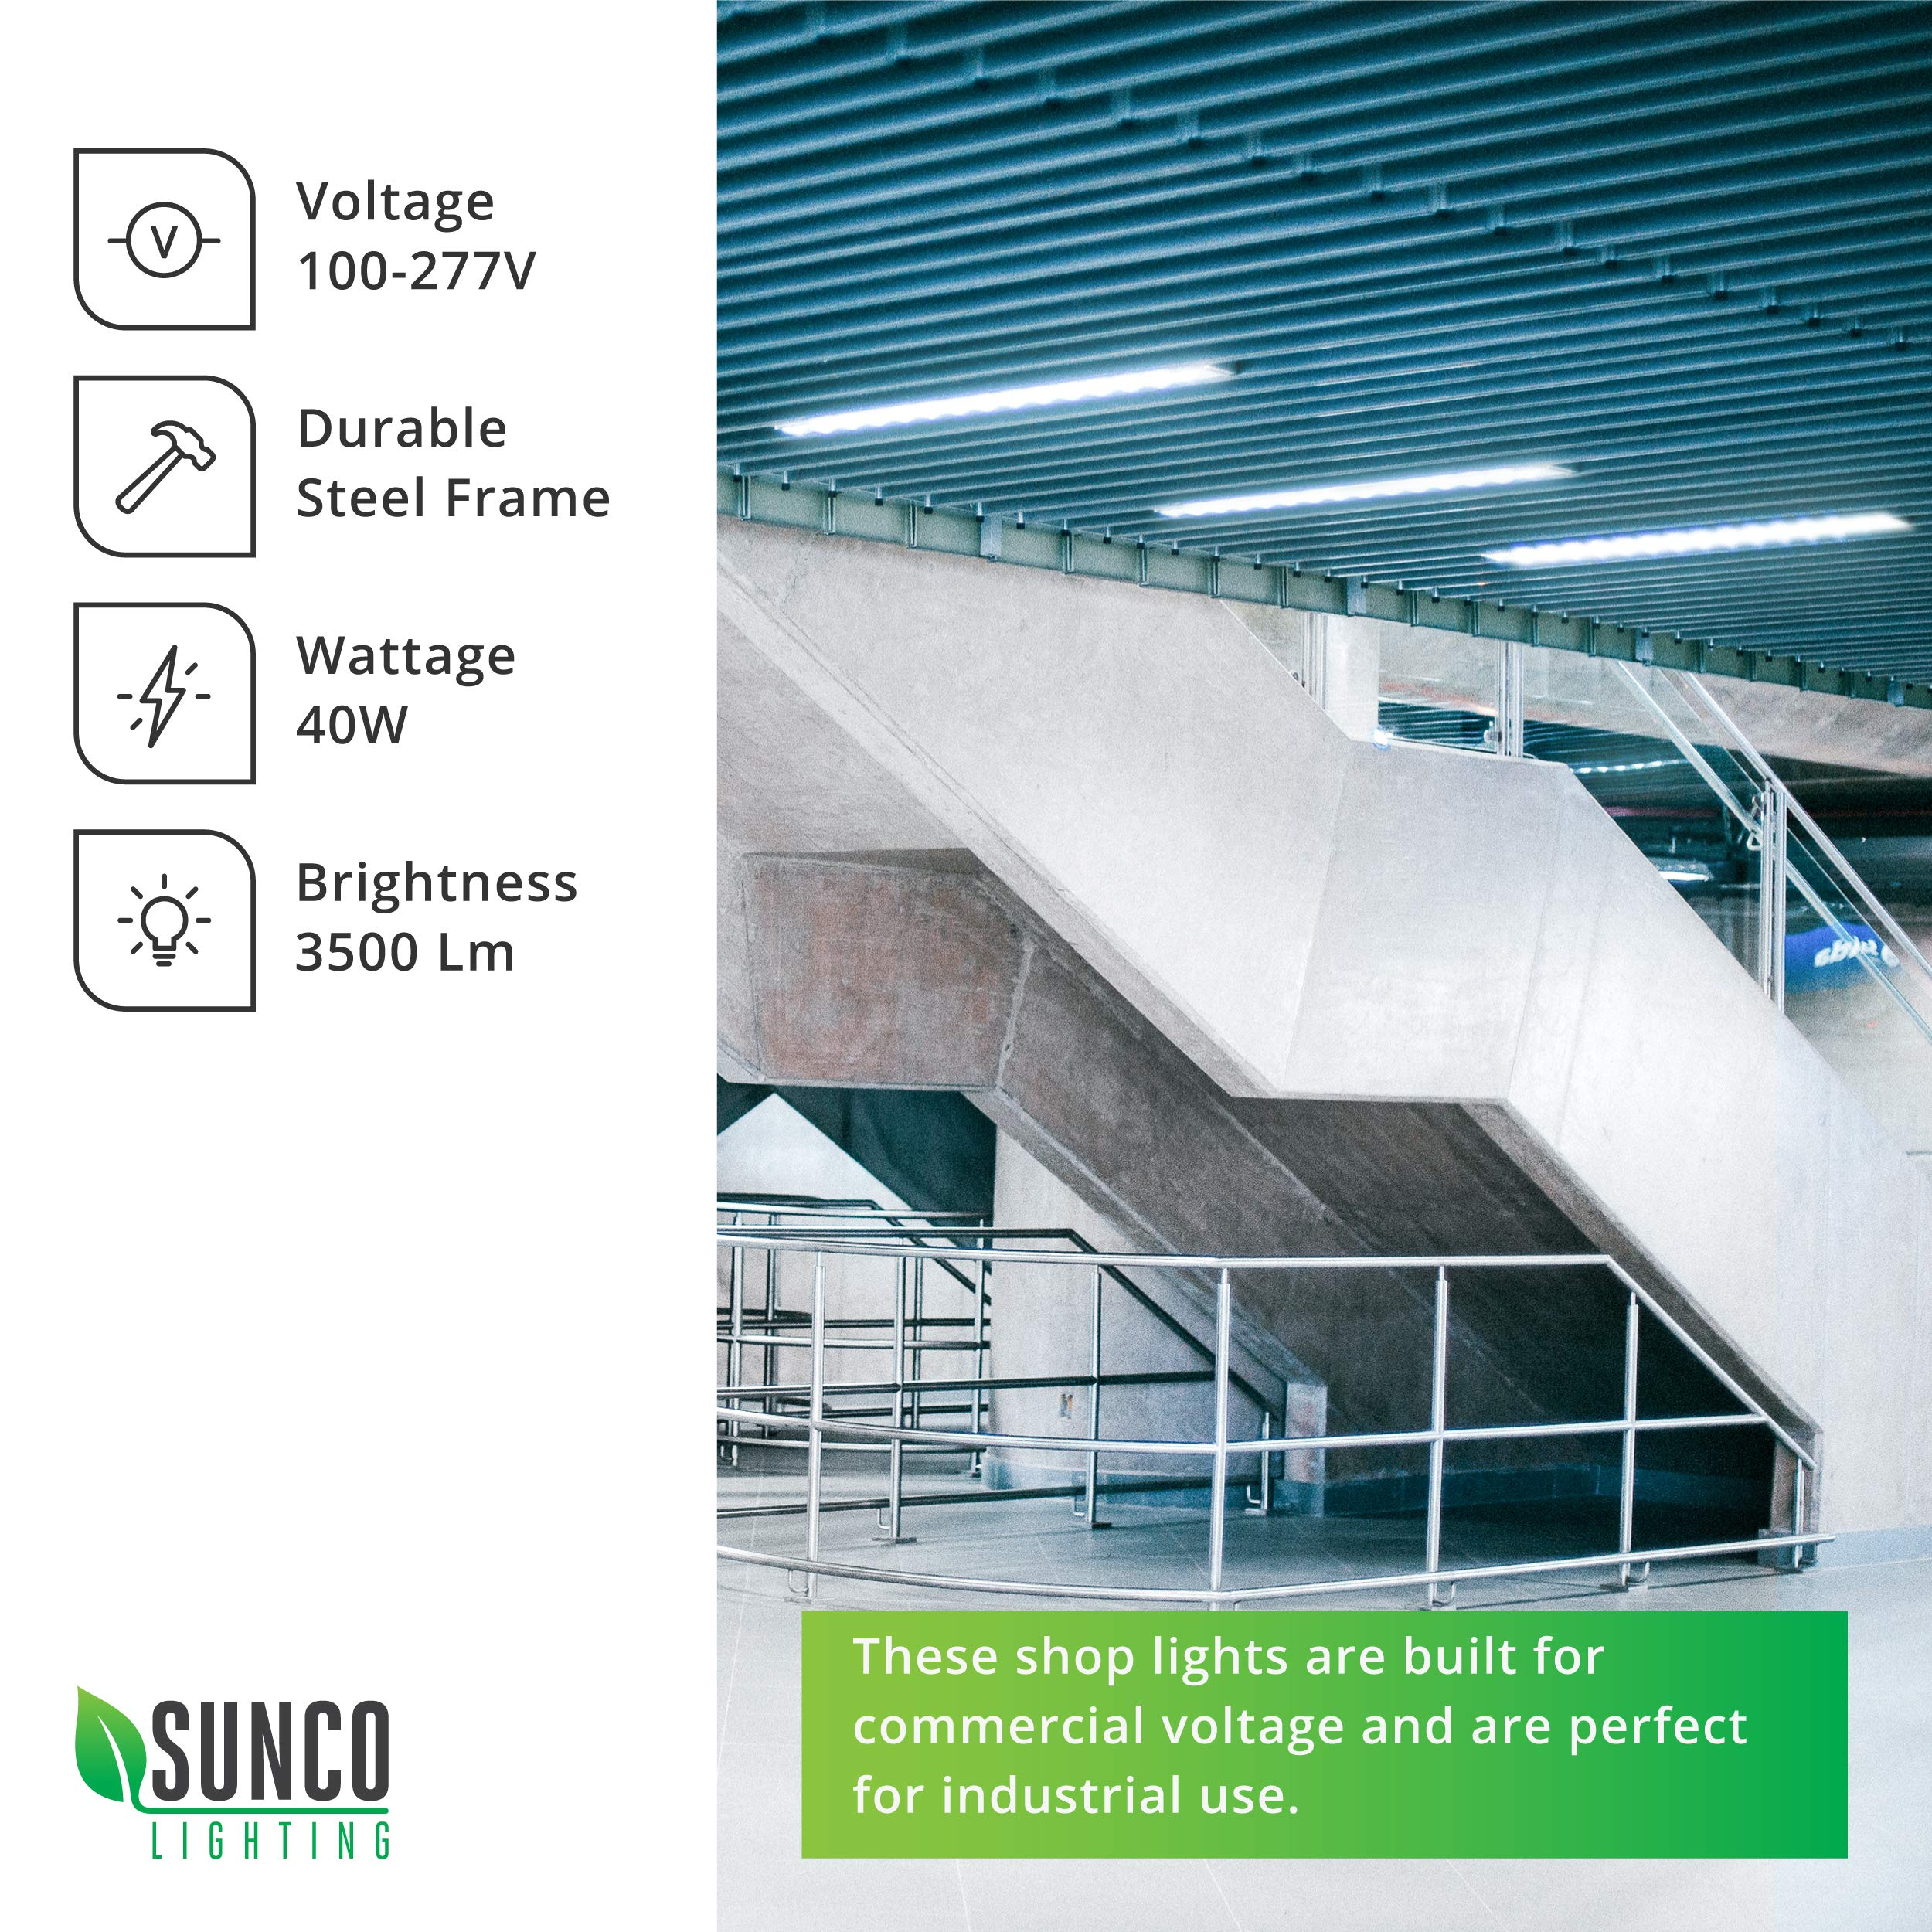 Sunco Lighting 12 Pack Wraparound LED Shop Light, 4 FT, Linkable, 40W=300W, 3500 LM, 5000K Daylight, Integrated LED, Direct Wire, Flush Mount Fixture, Utility Light, Garage- ETL, Energy Star by Sunco Lighting (Image #4)